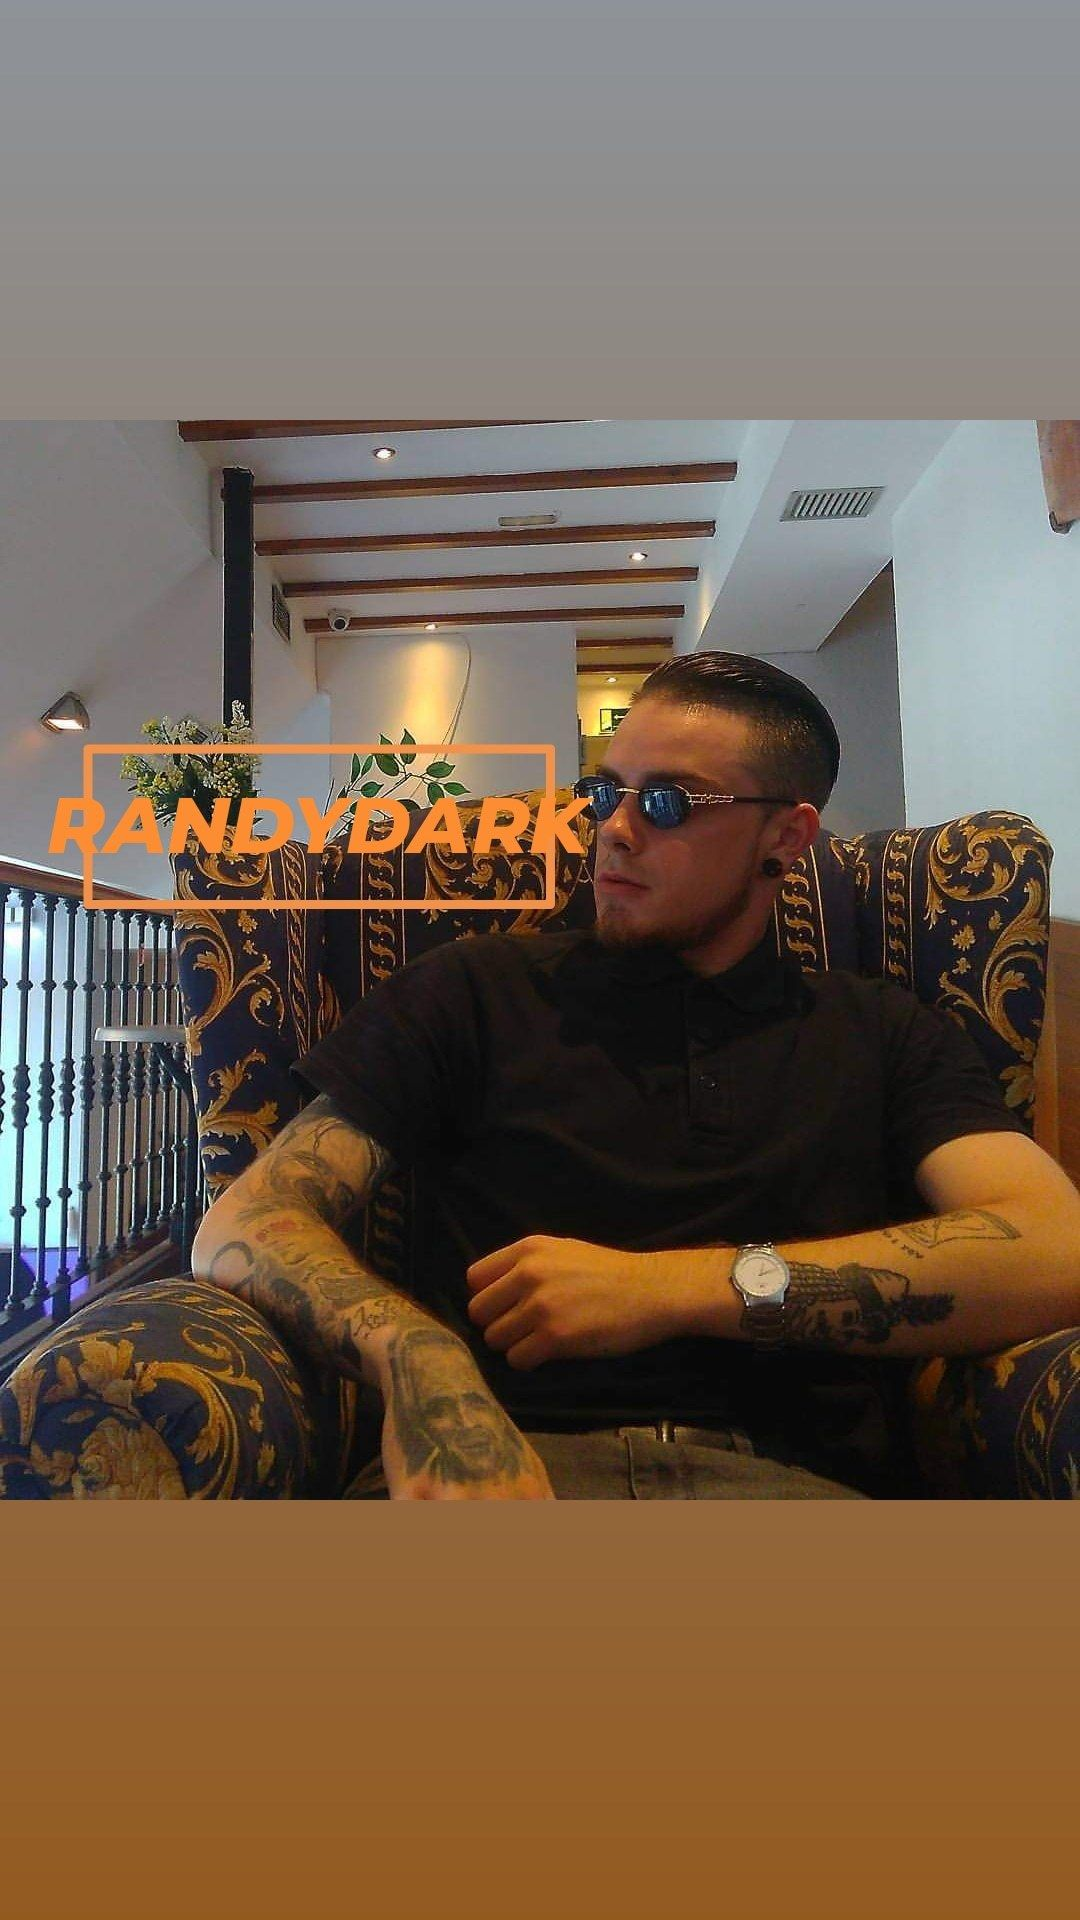 RANDY DARK OnlyFans Leaked Photos and Videos